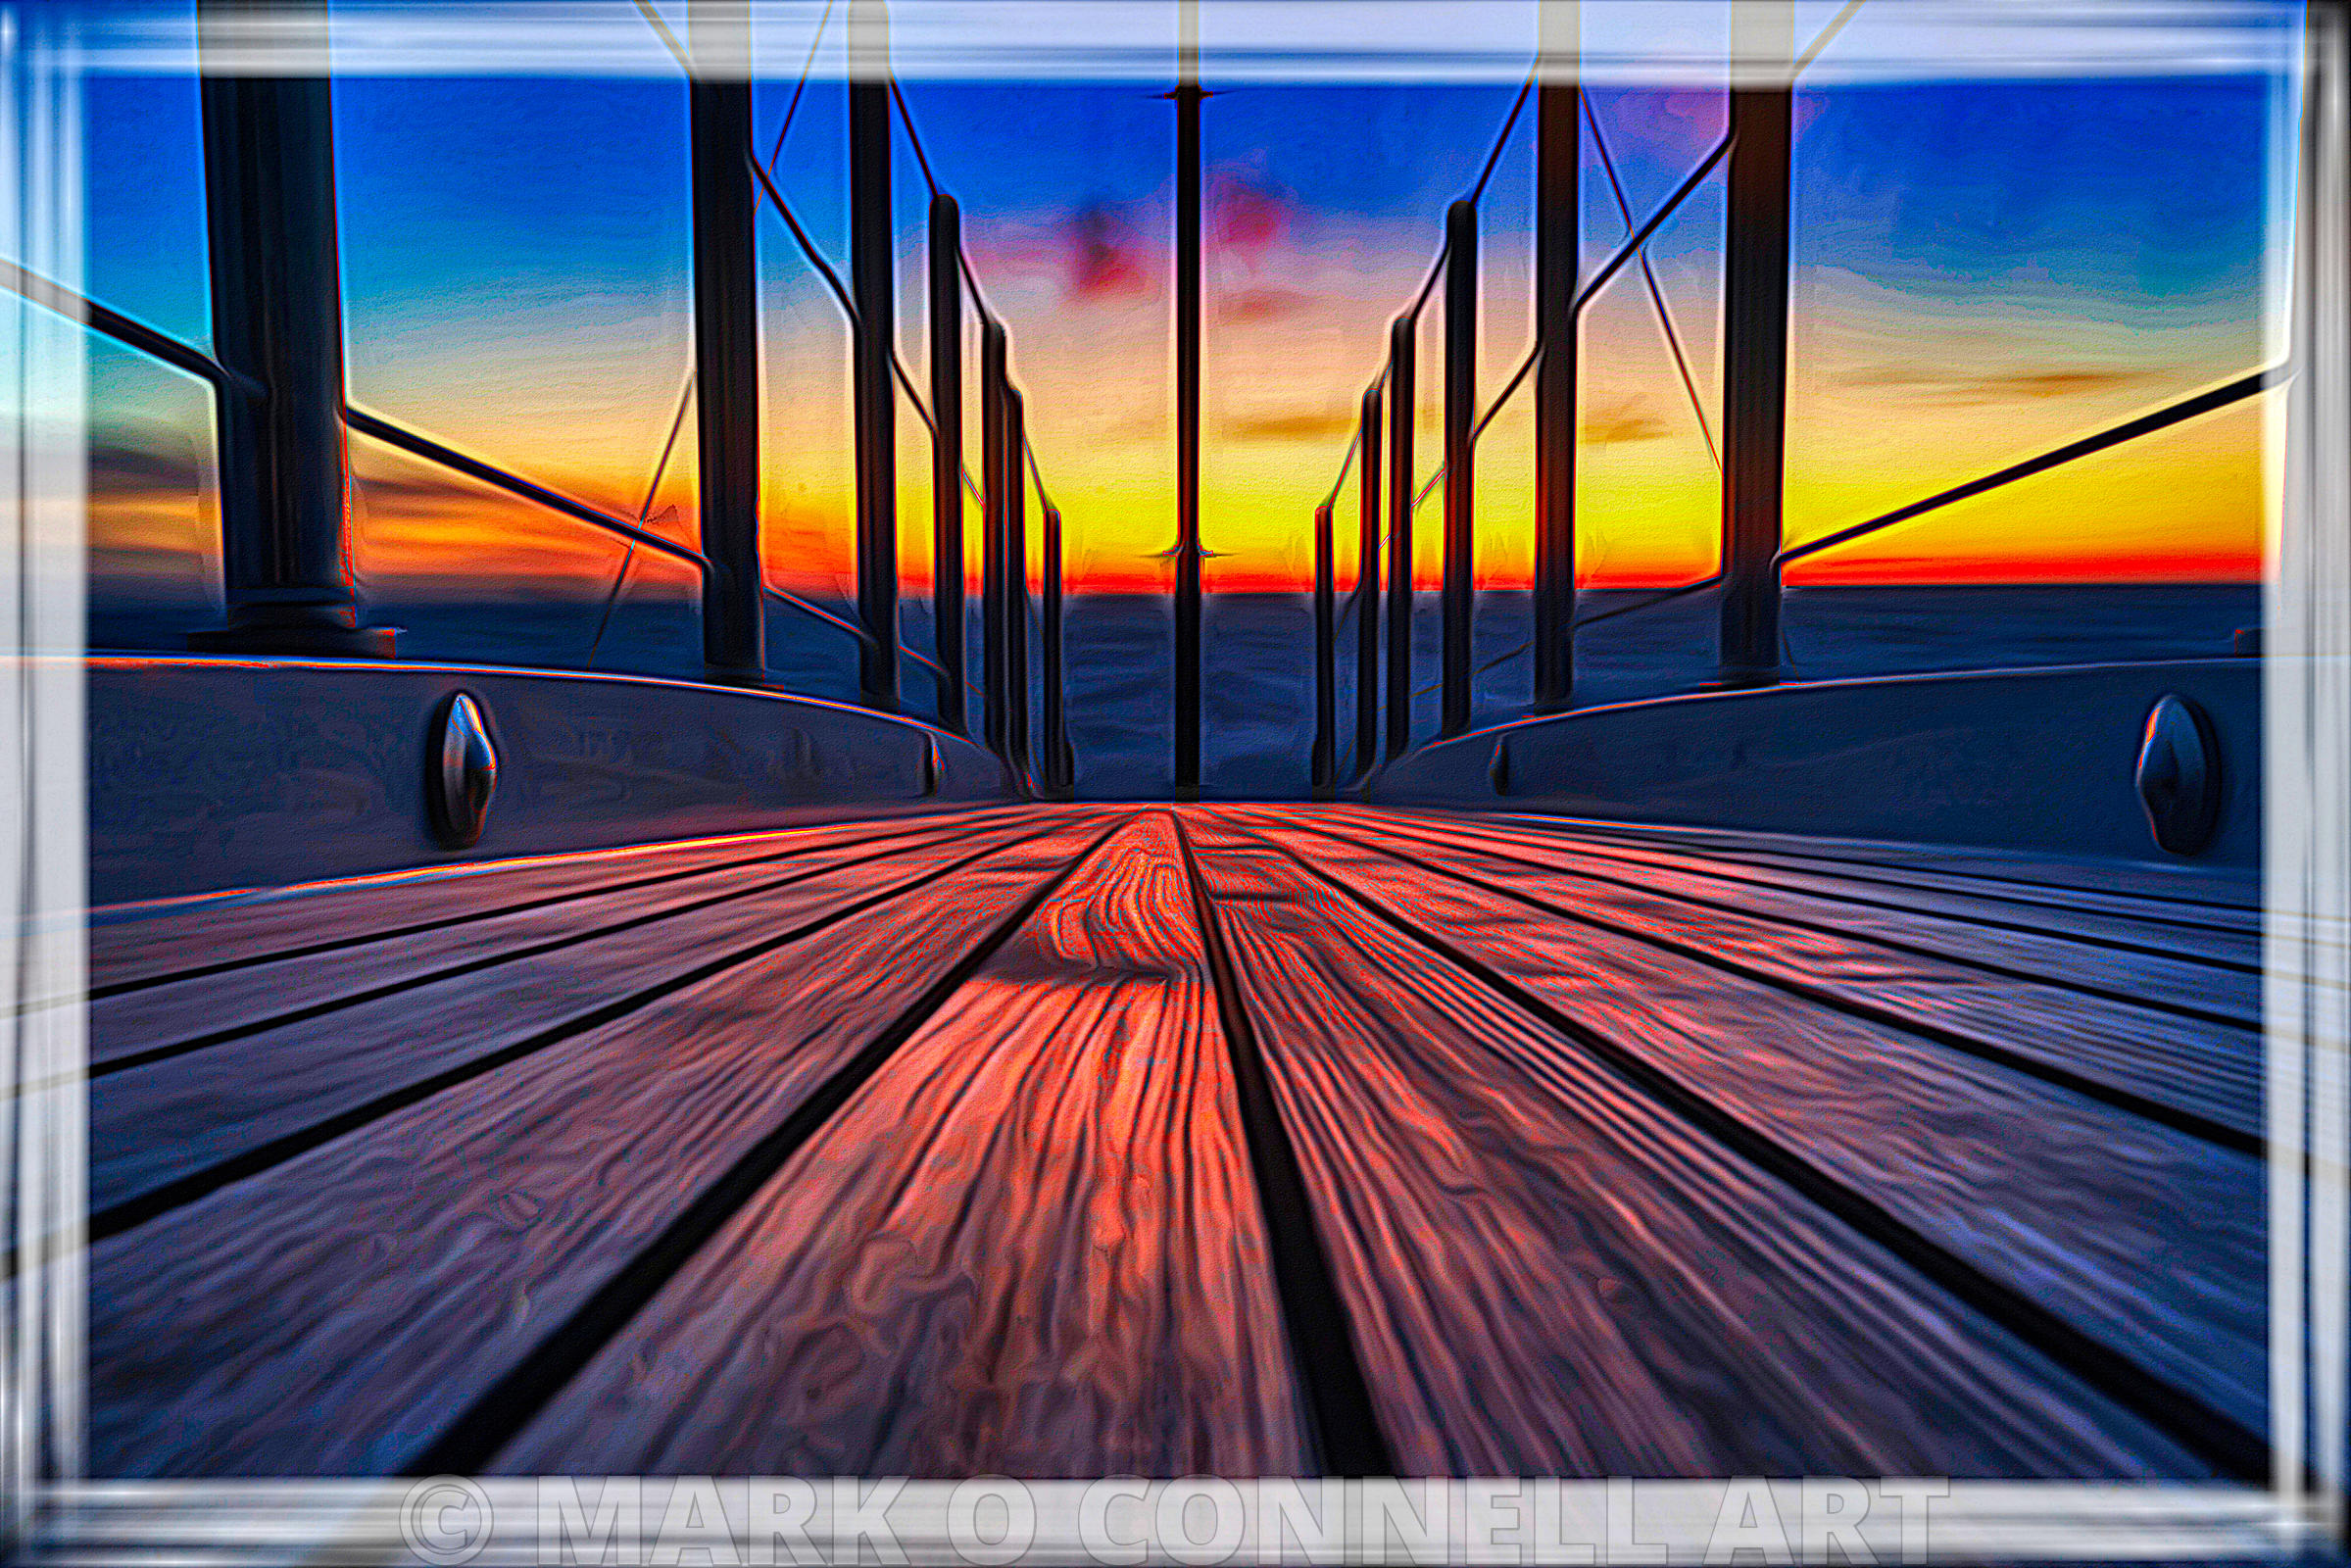 art,painting,airbrush,abstract,sunset,bow,deck,railings,superyacht,teak